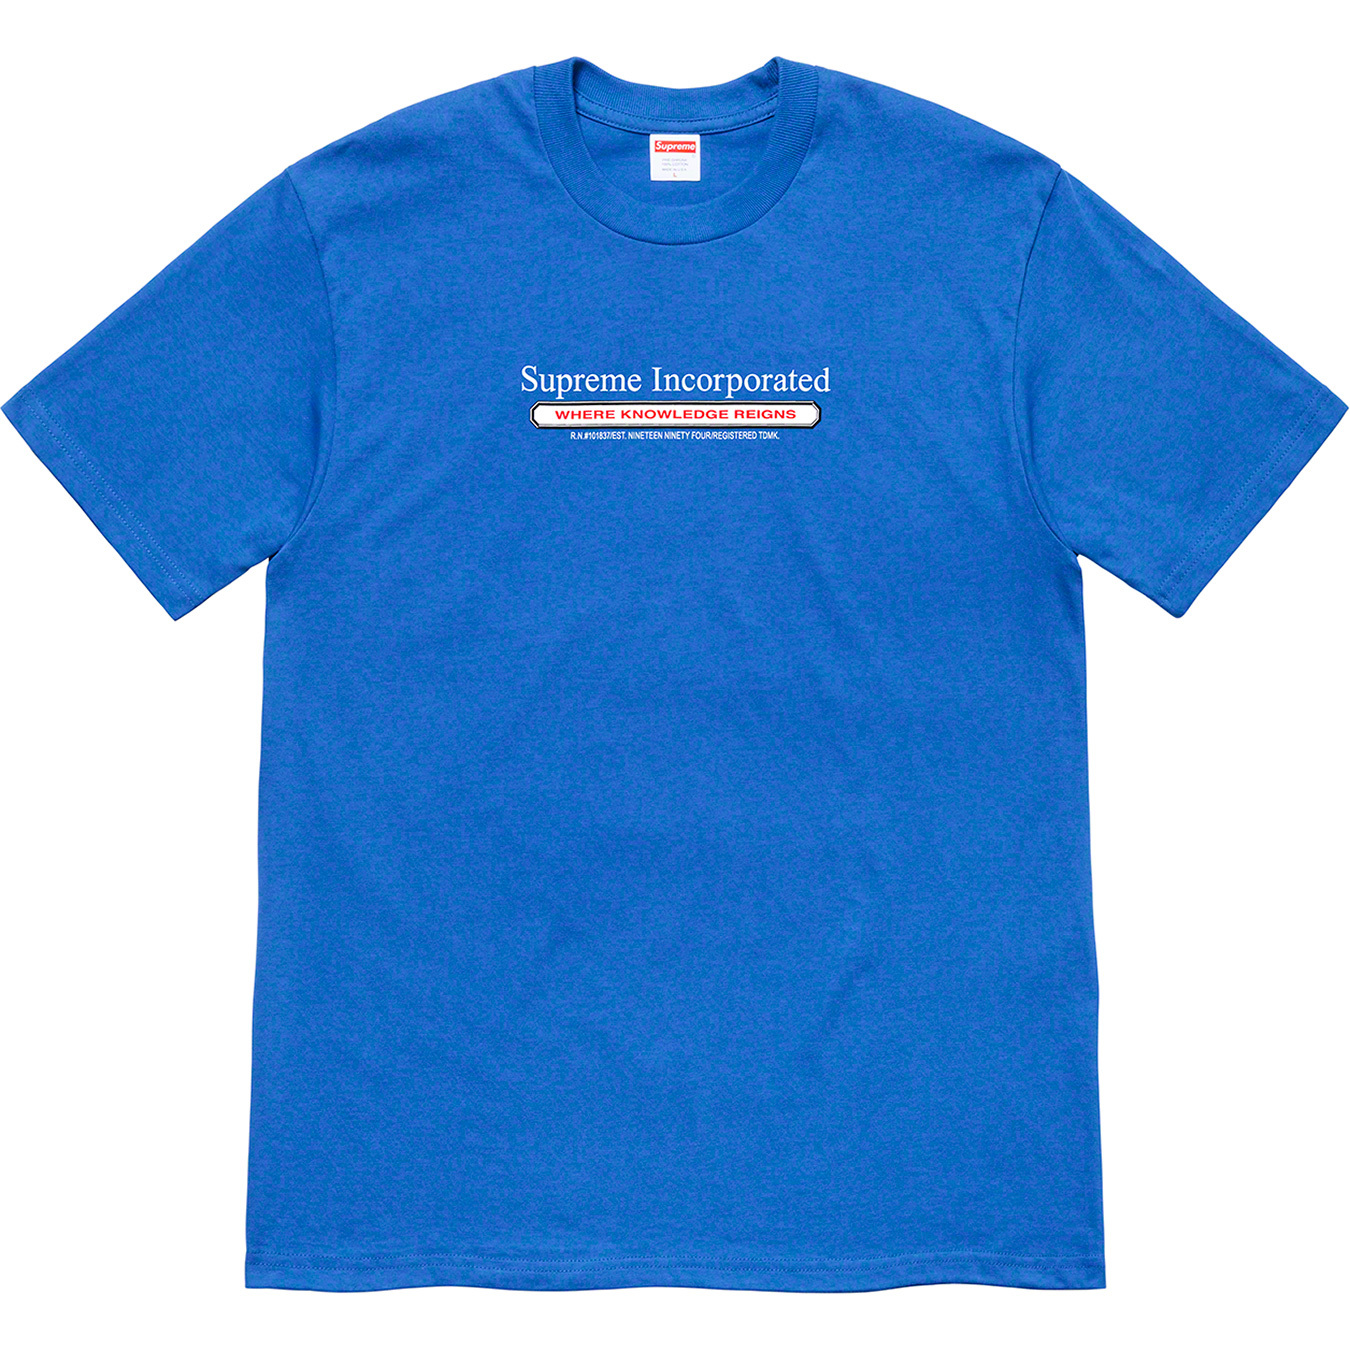 supreme-online-store-19aw-19fw-inc-tee